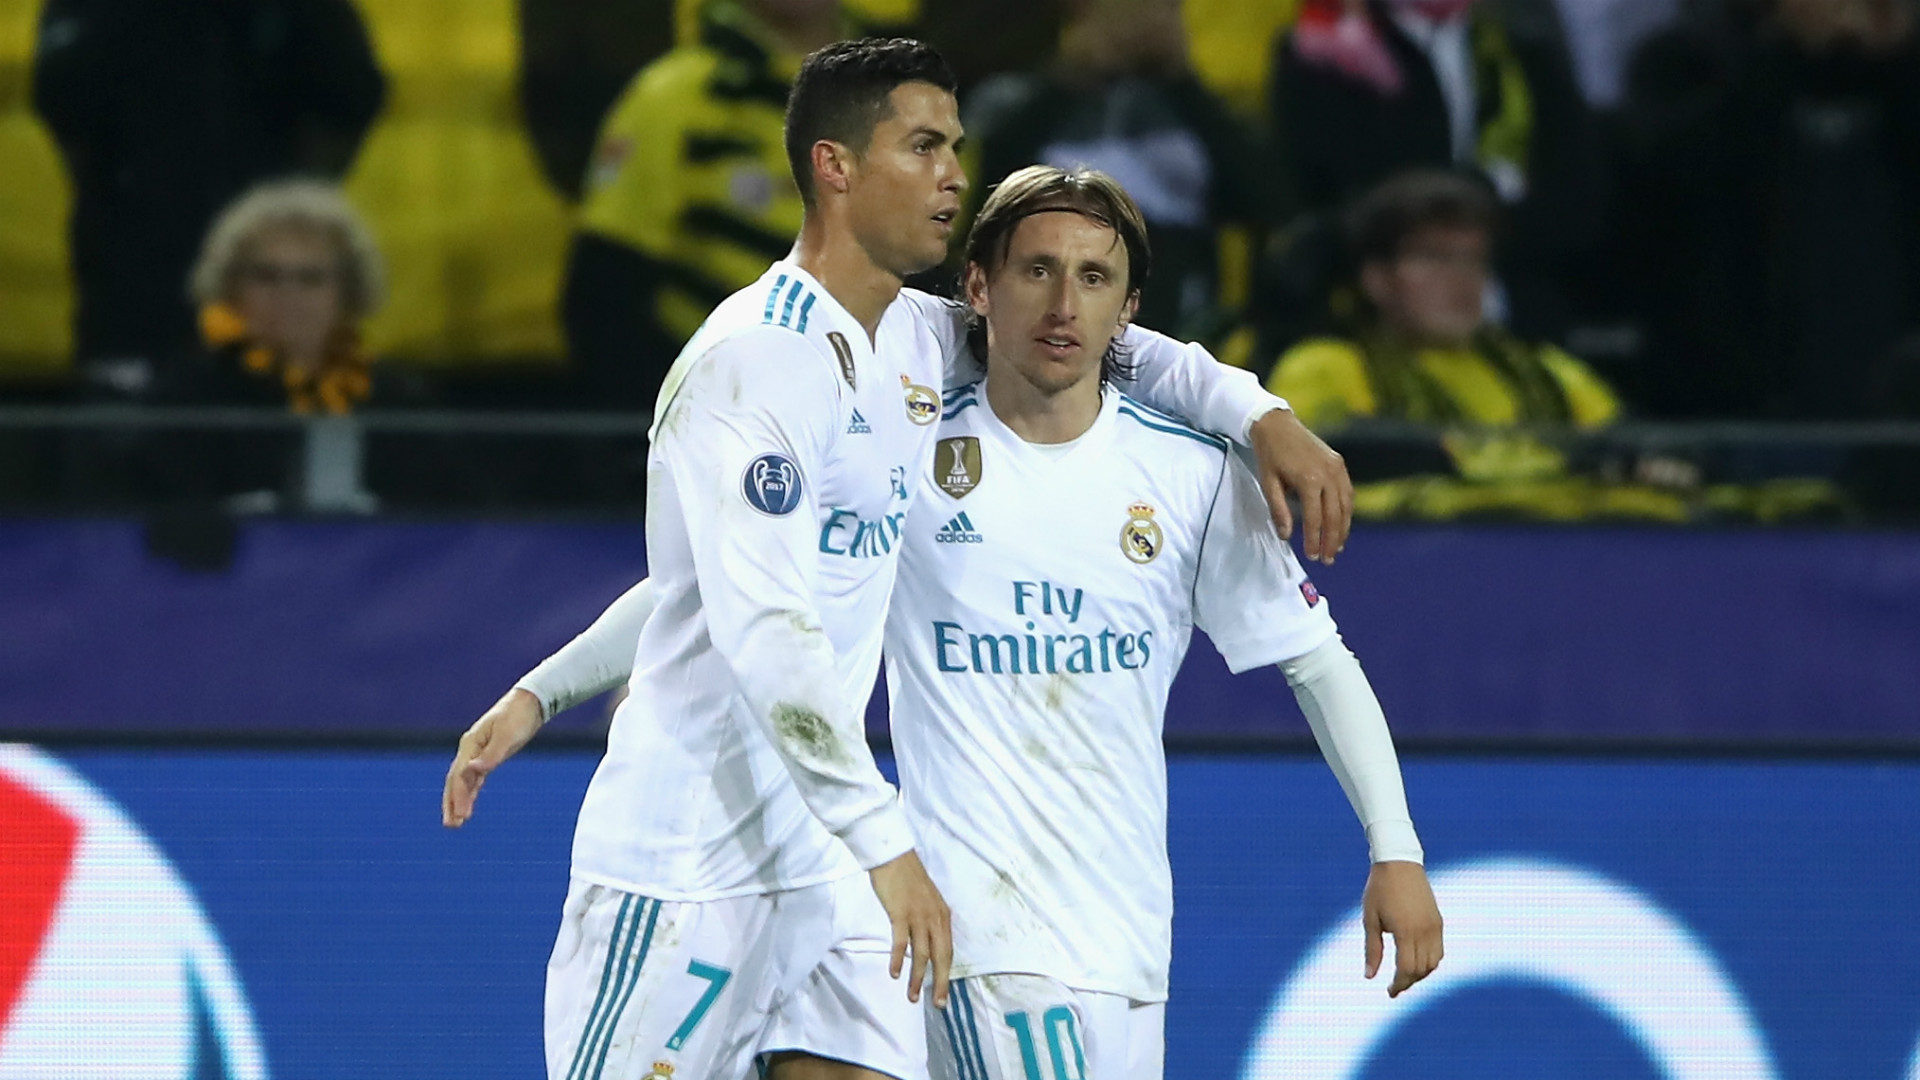 Ronaldo's goals and character missed at Madrid, says Modric as Croatian aims to finish career with Real